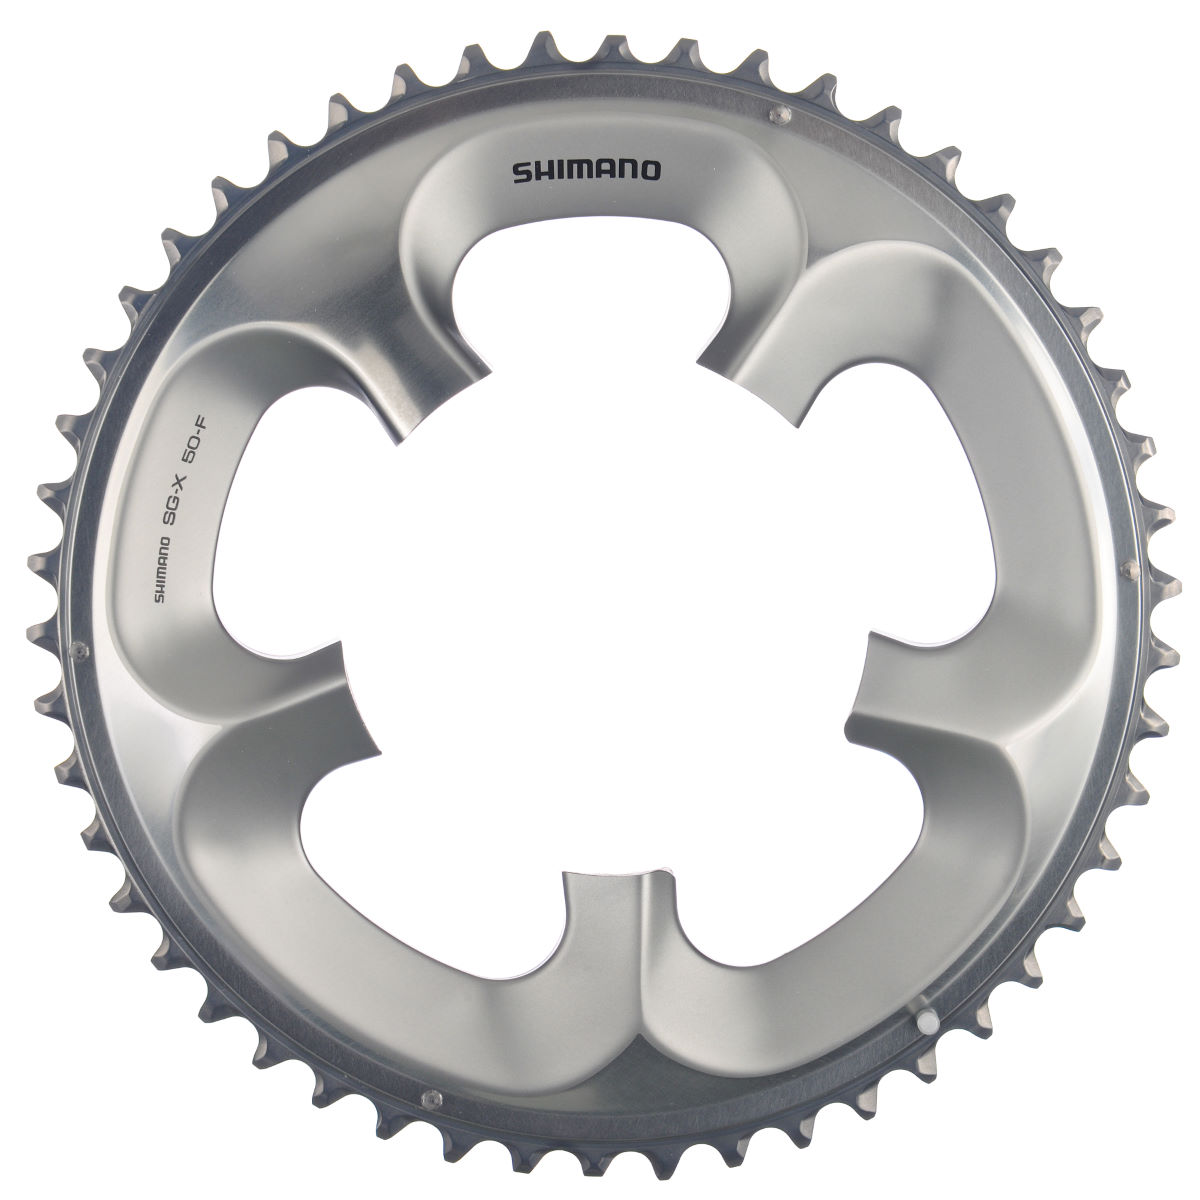 Shimano Ultegra Fc6750 10sp Compact Chainrings - 34t 10 Speed Silver